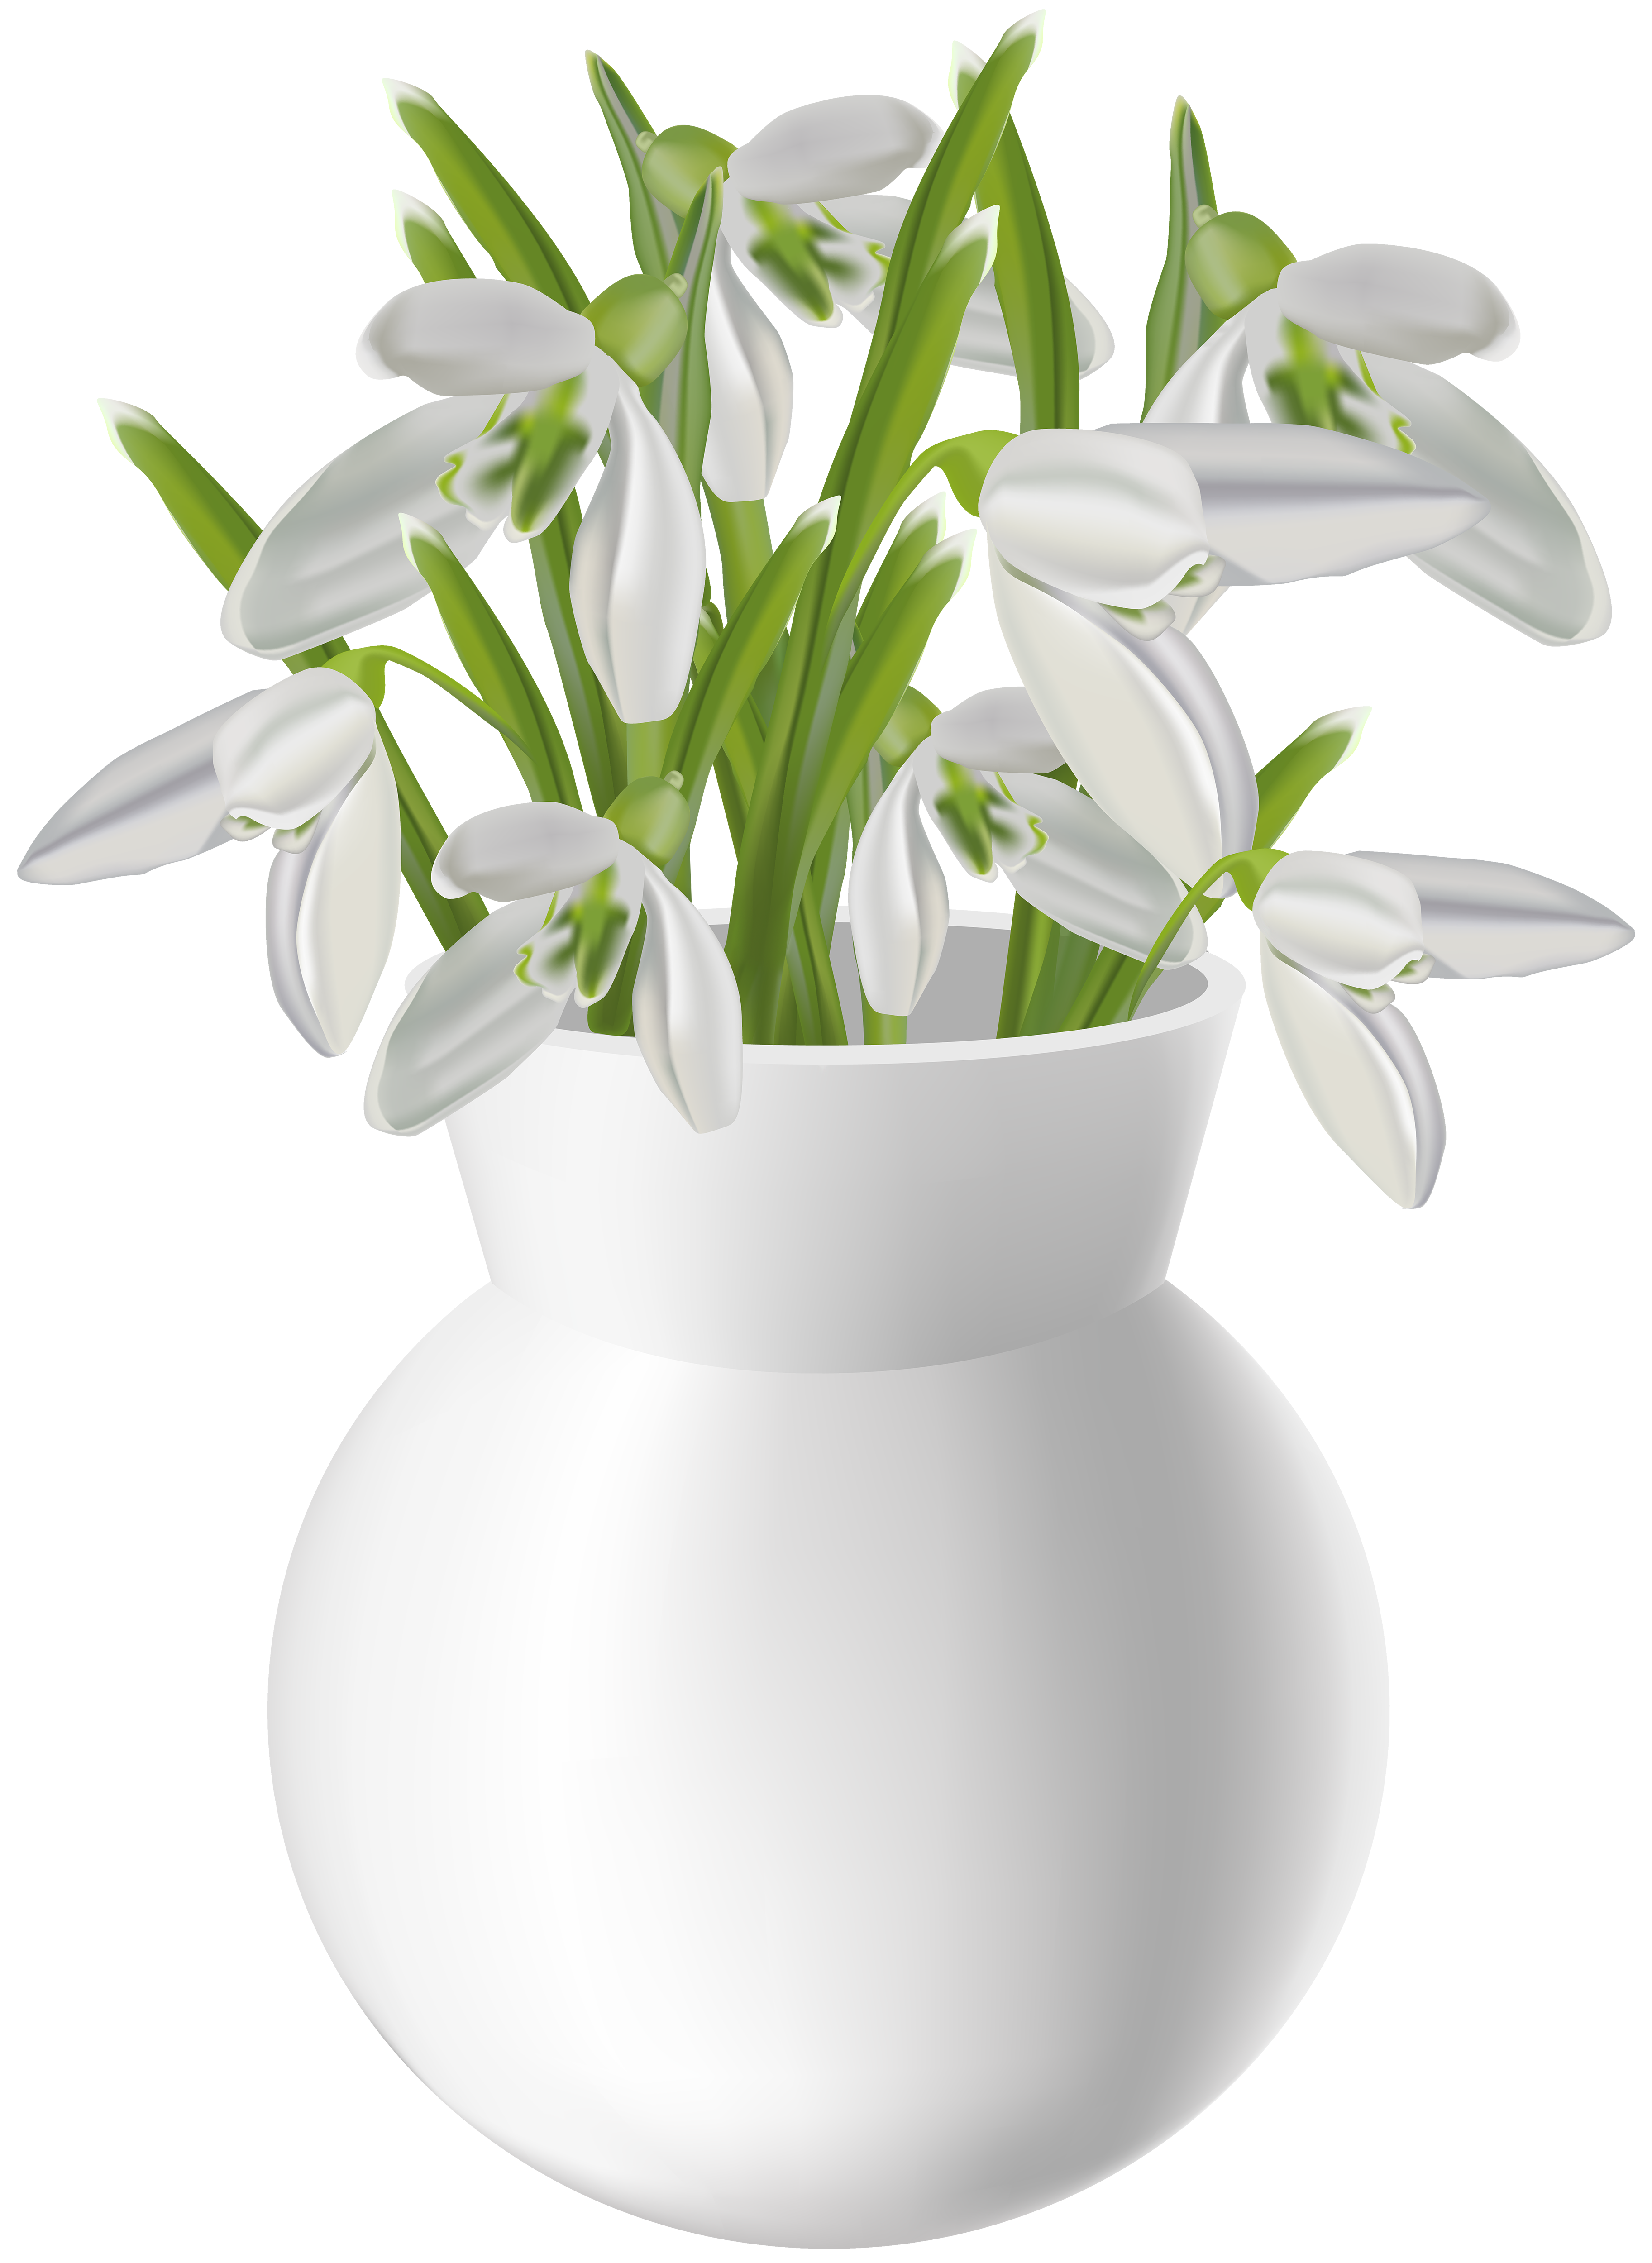 Vase clipart gold. With snowdrops transparent png